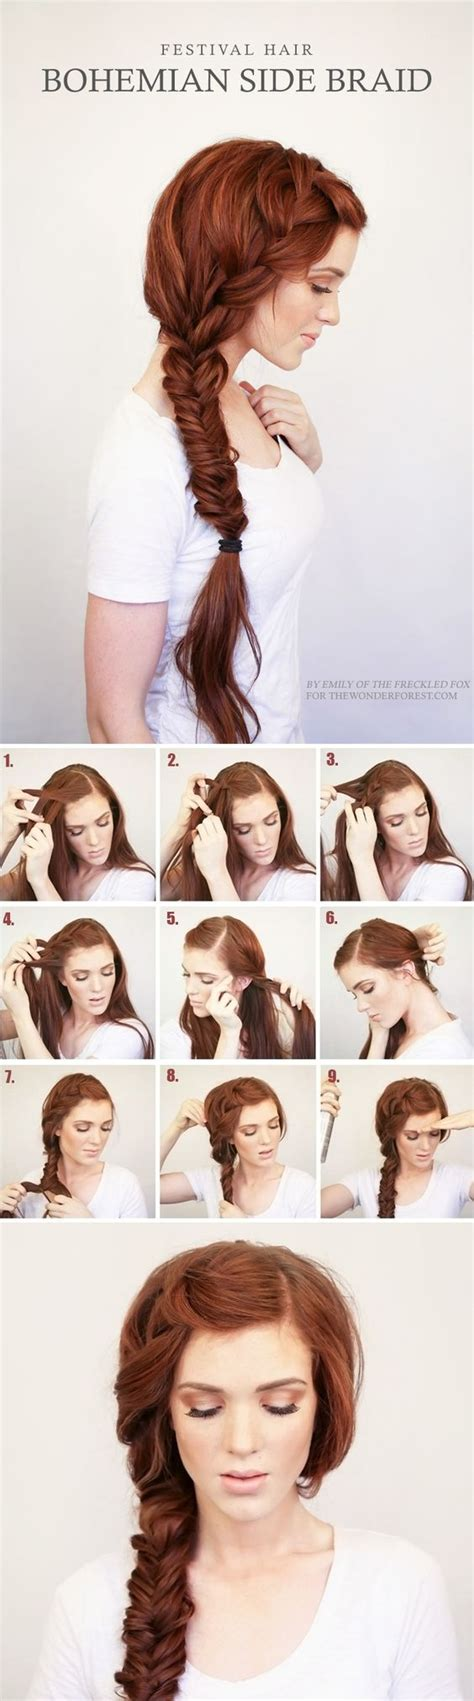 hairstyles diy blog 10 best diy wedding hairstyles with tutorials jewe blog